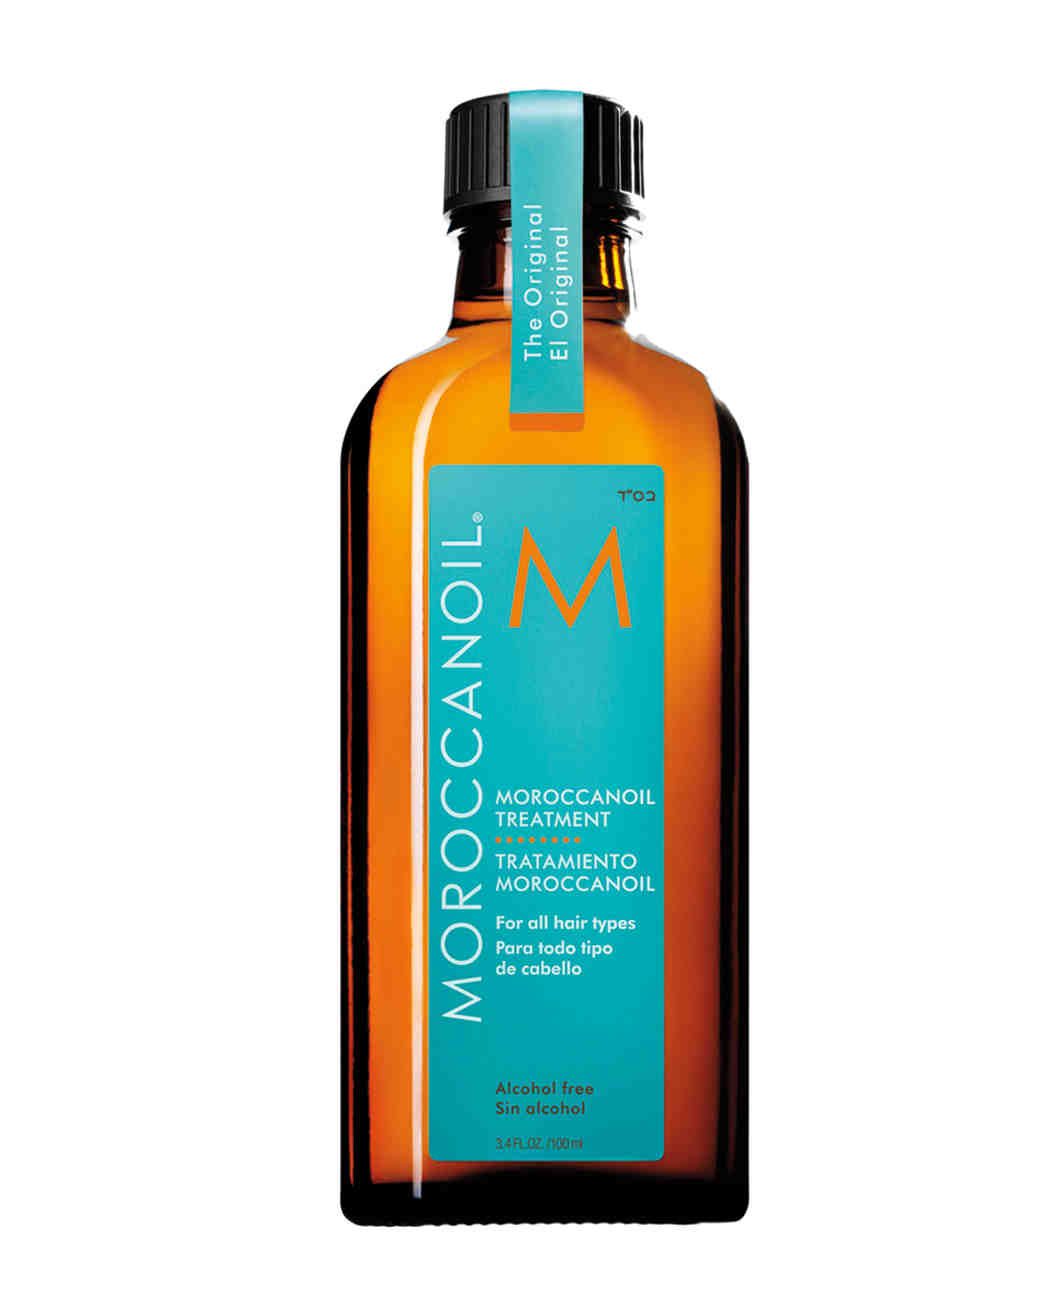 moroccanoil-treatment-0314.jpg